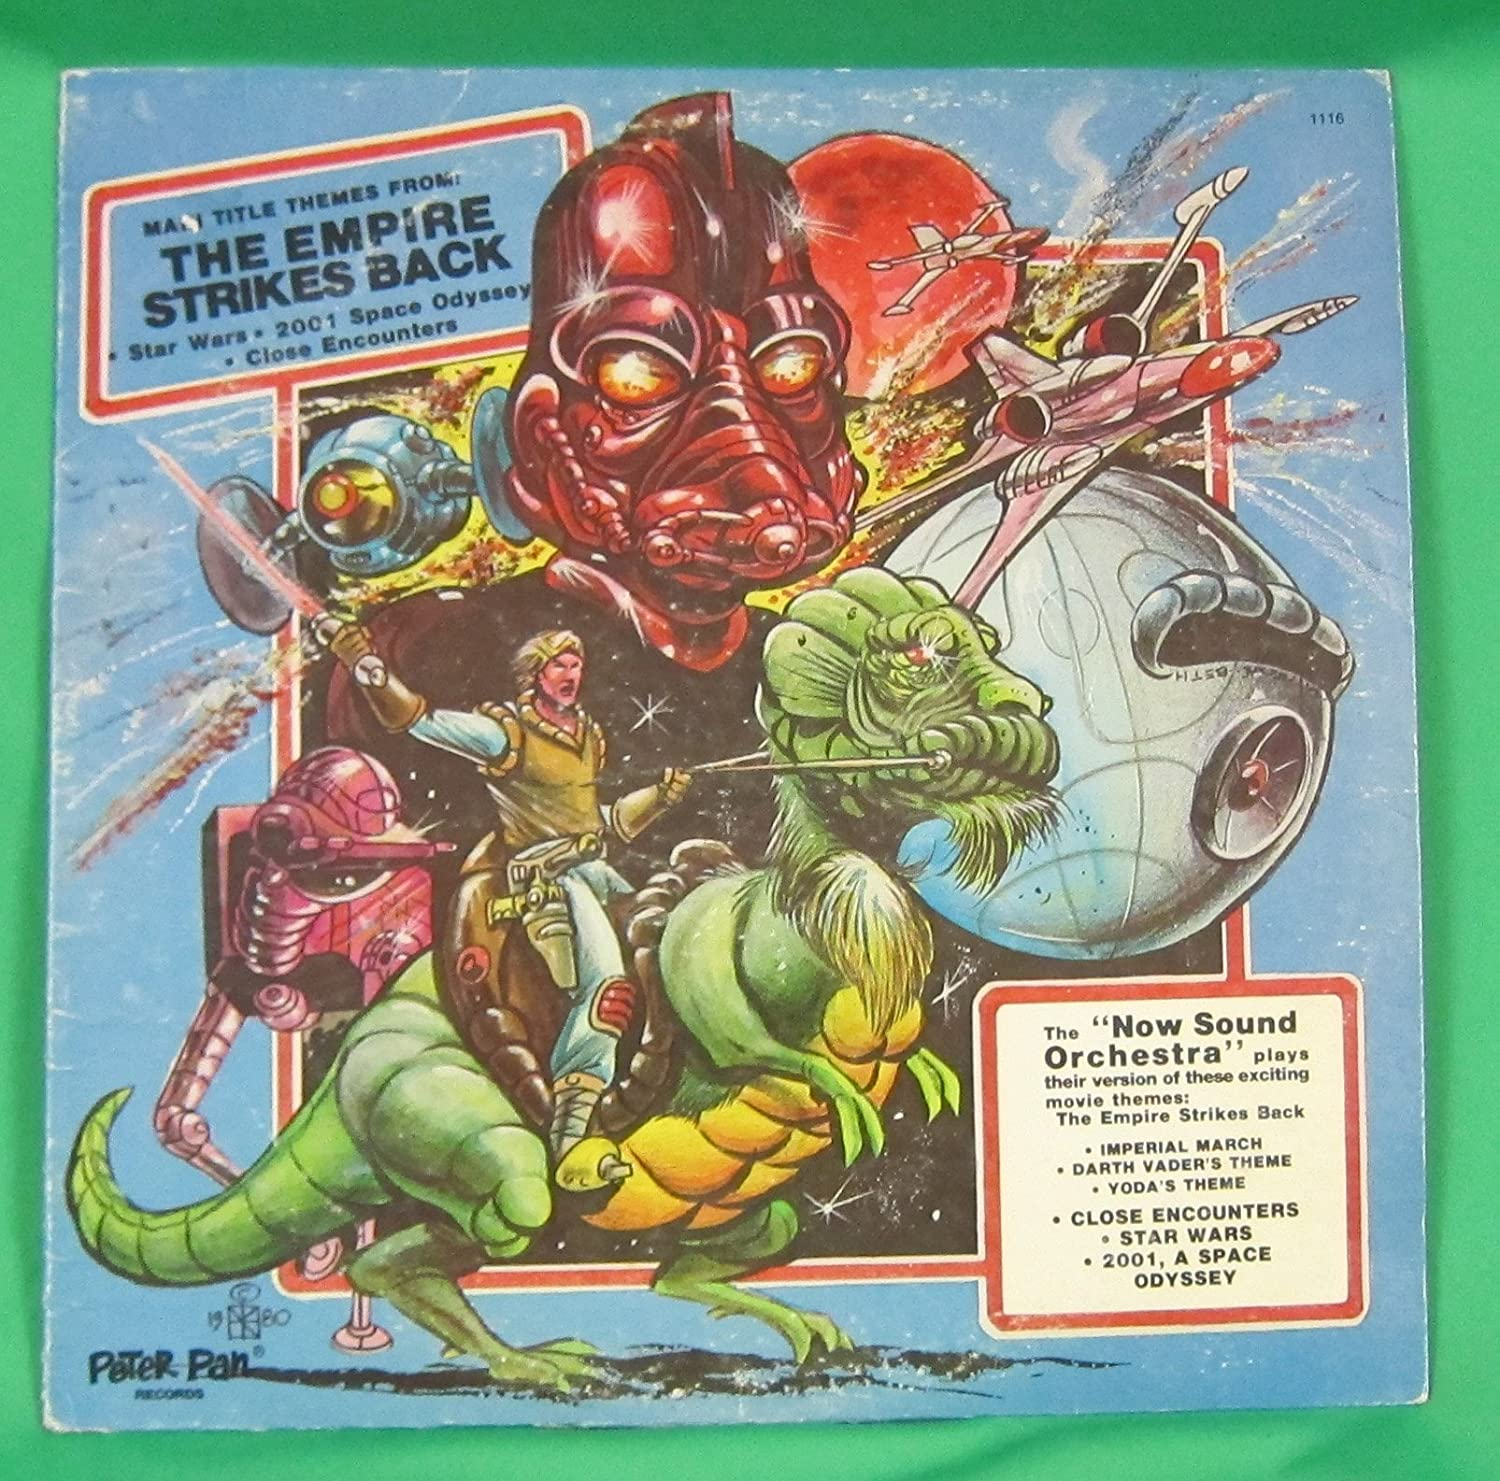 Main Title Themes From The Empire Strikes Back, etc.